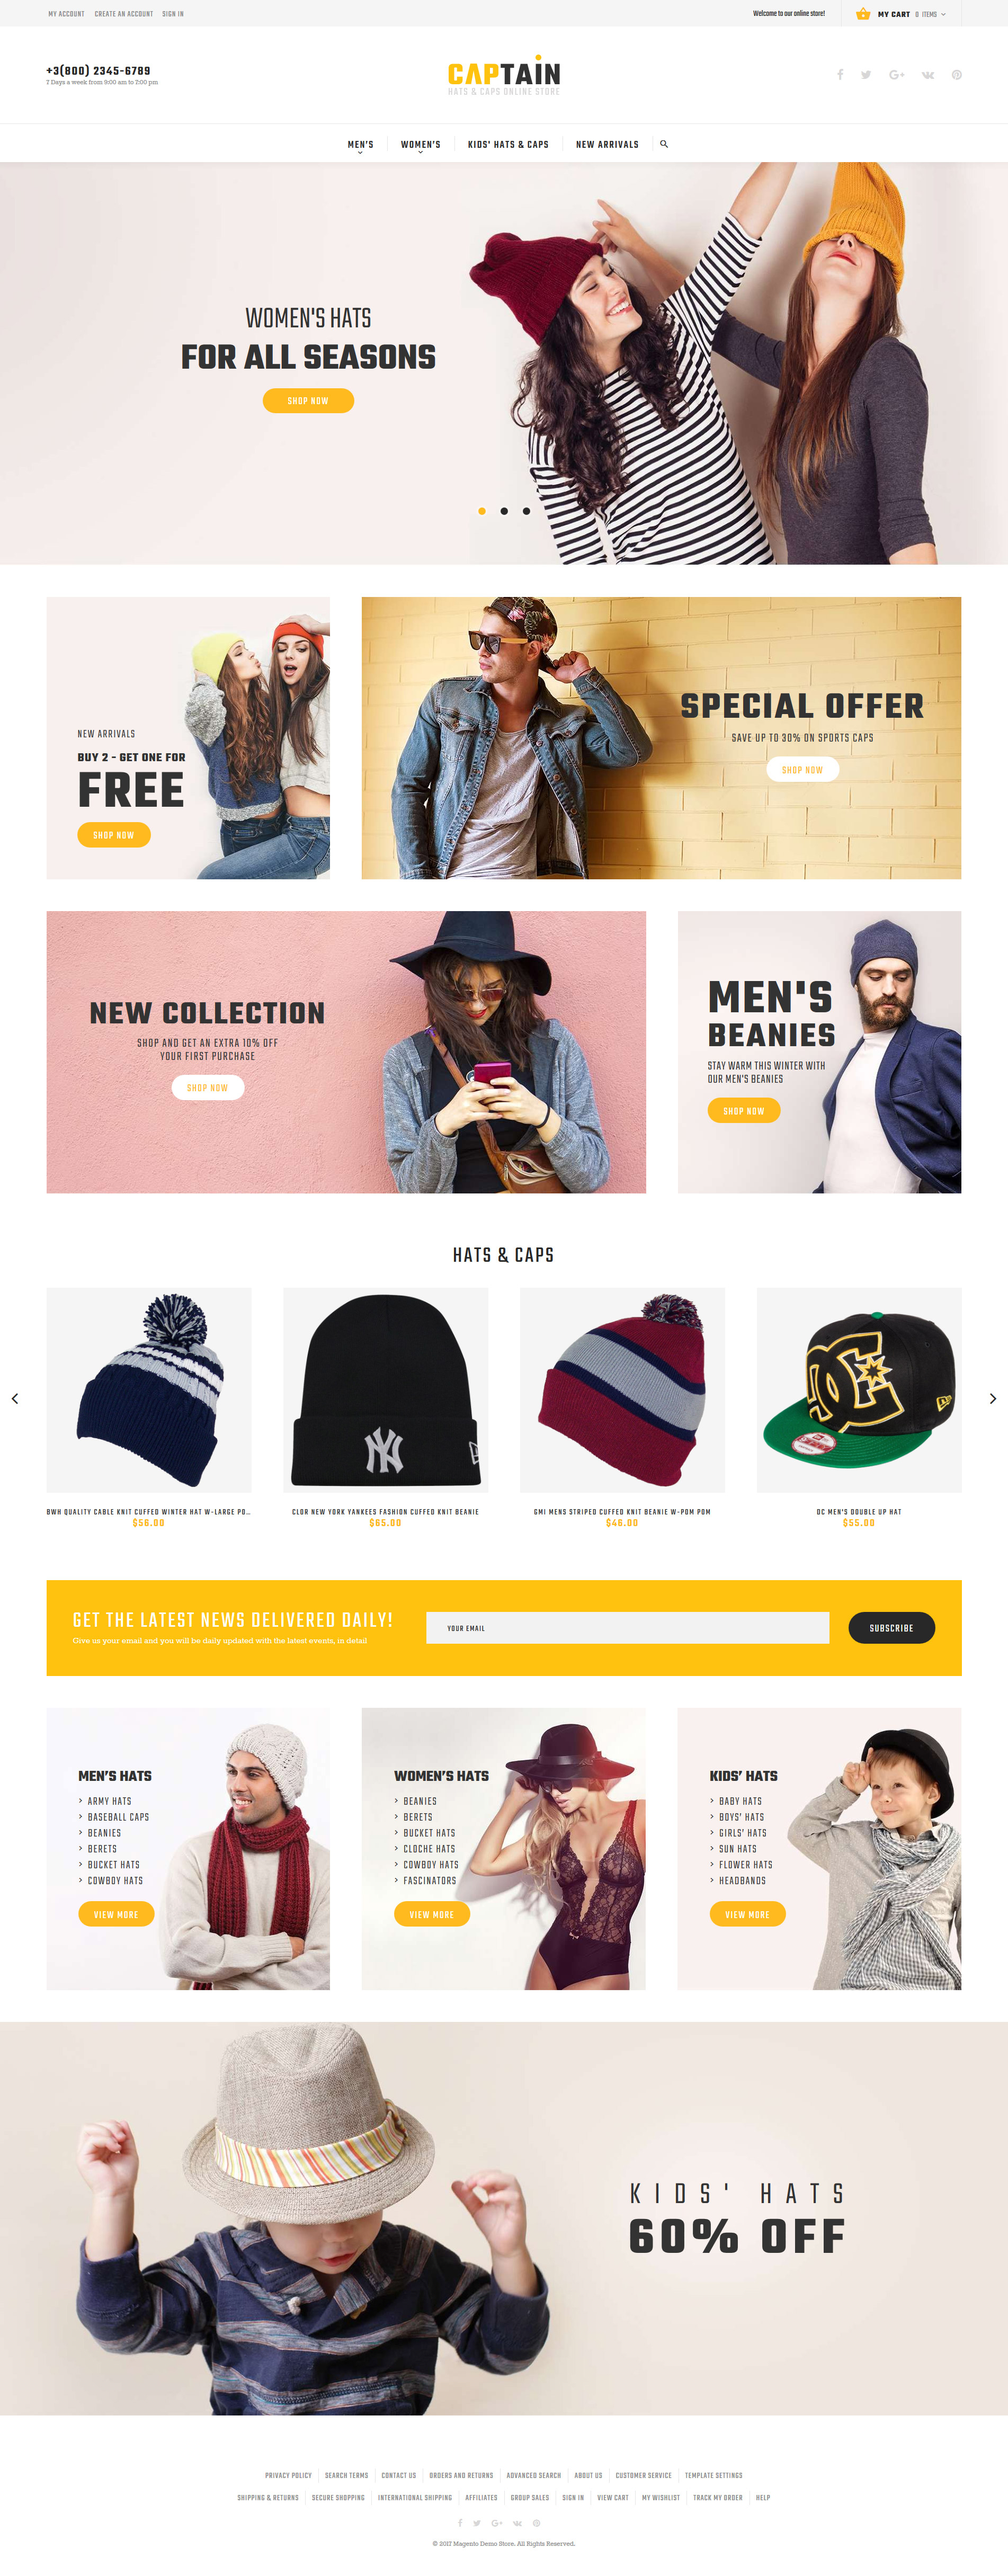 """Captain - Hats and Caps Online Store"" 响应式Magento模板 #62084 - 截图"